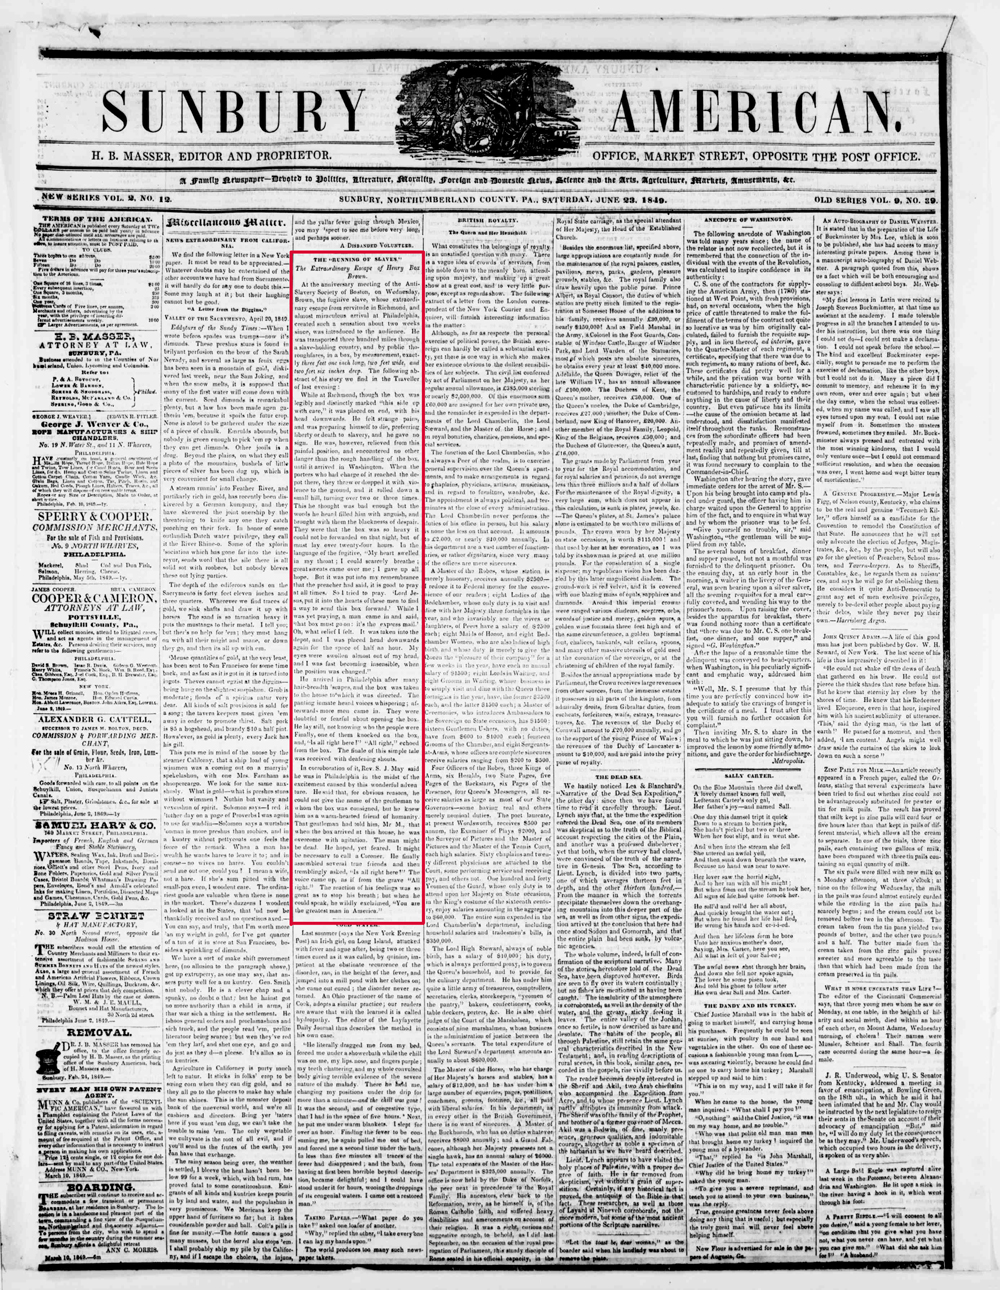 the article from Sunbury American newspaper from Northumberland County in Pennsylvania about Henry Box Brown